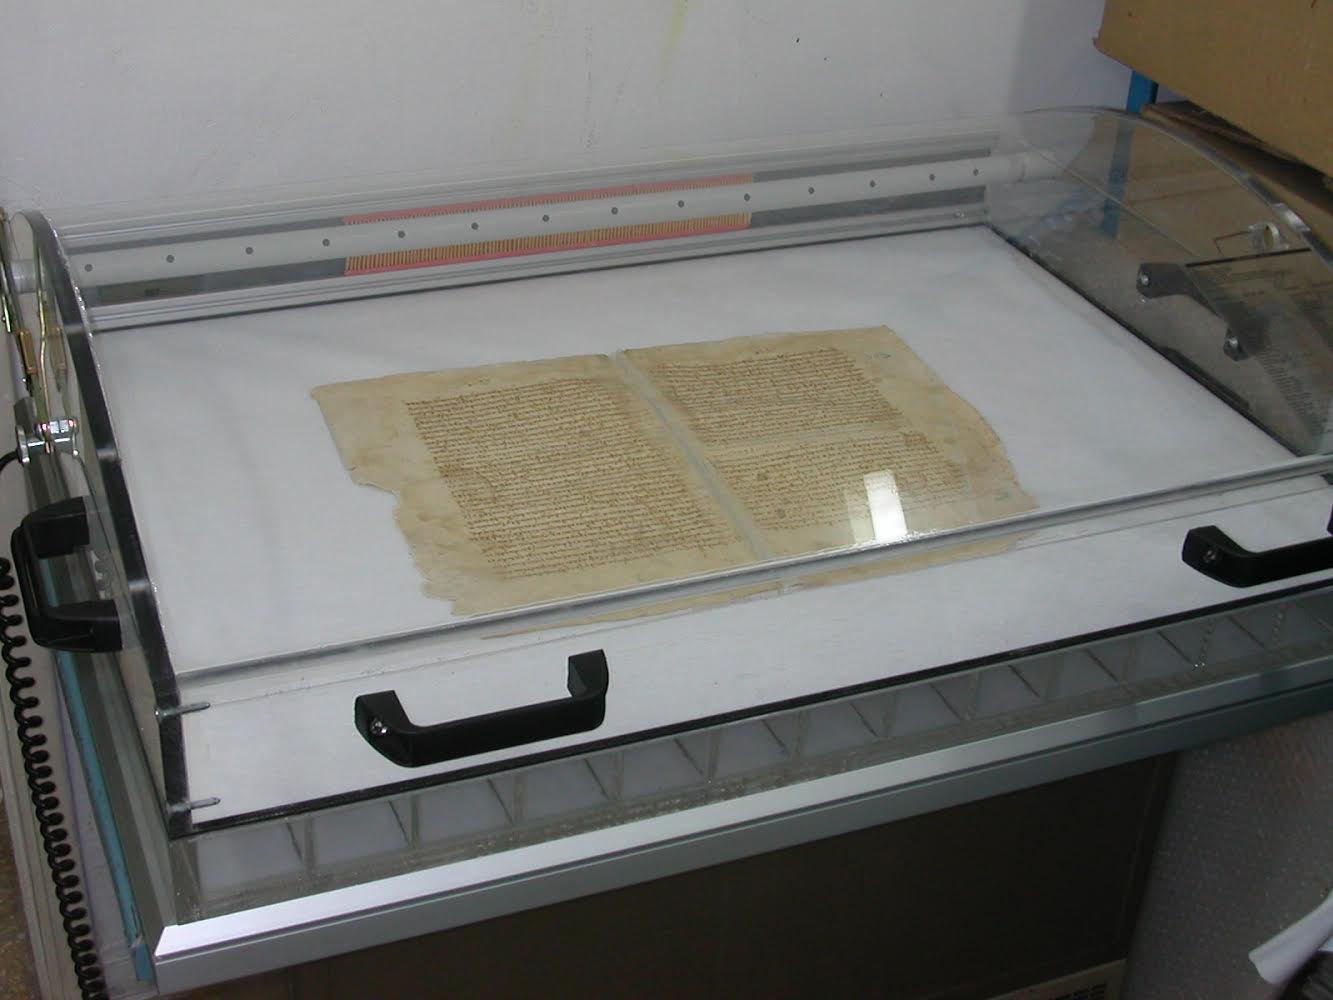 A Humidification Chamber Made To Measure The Book